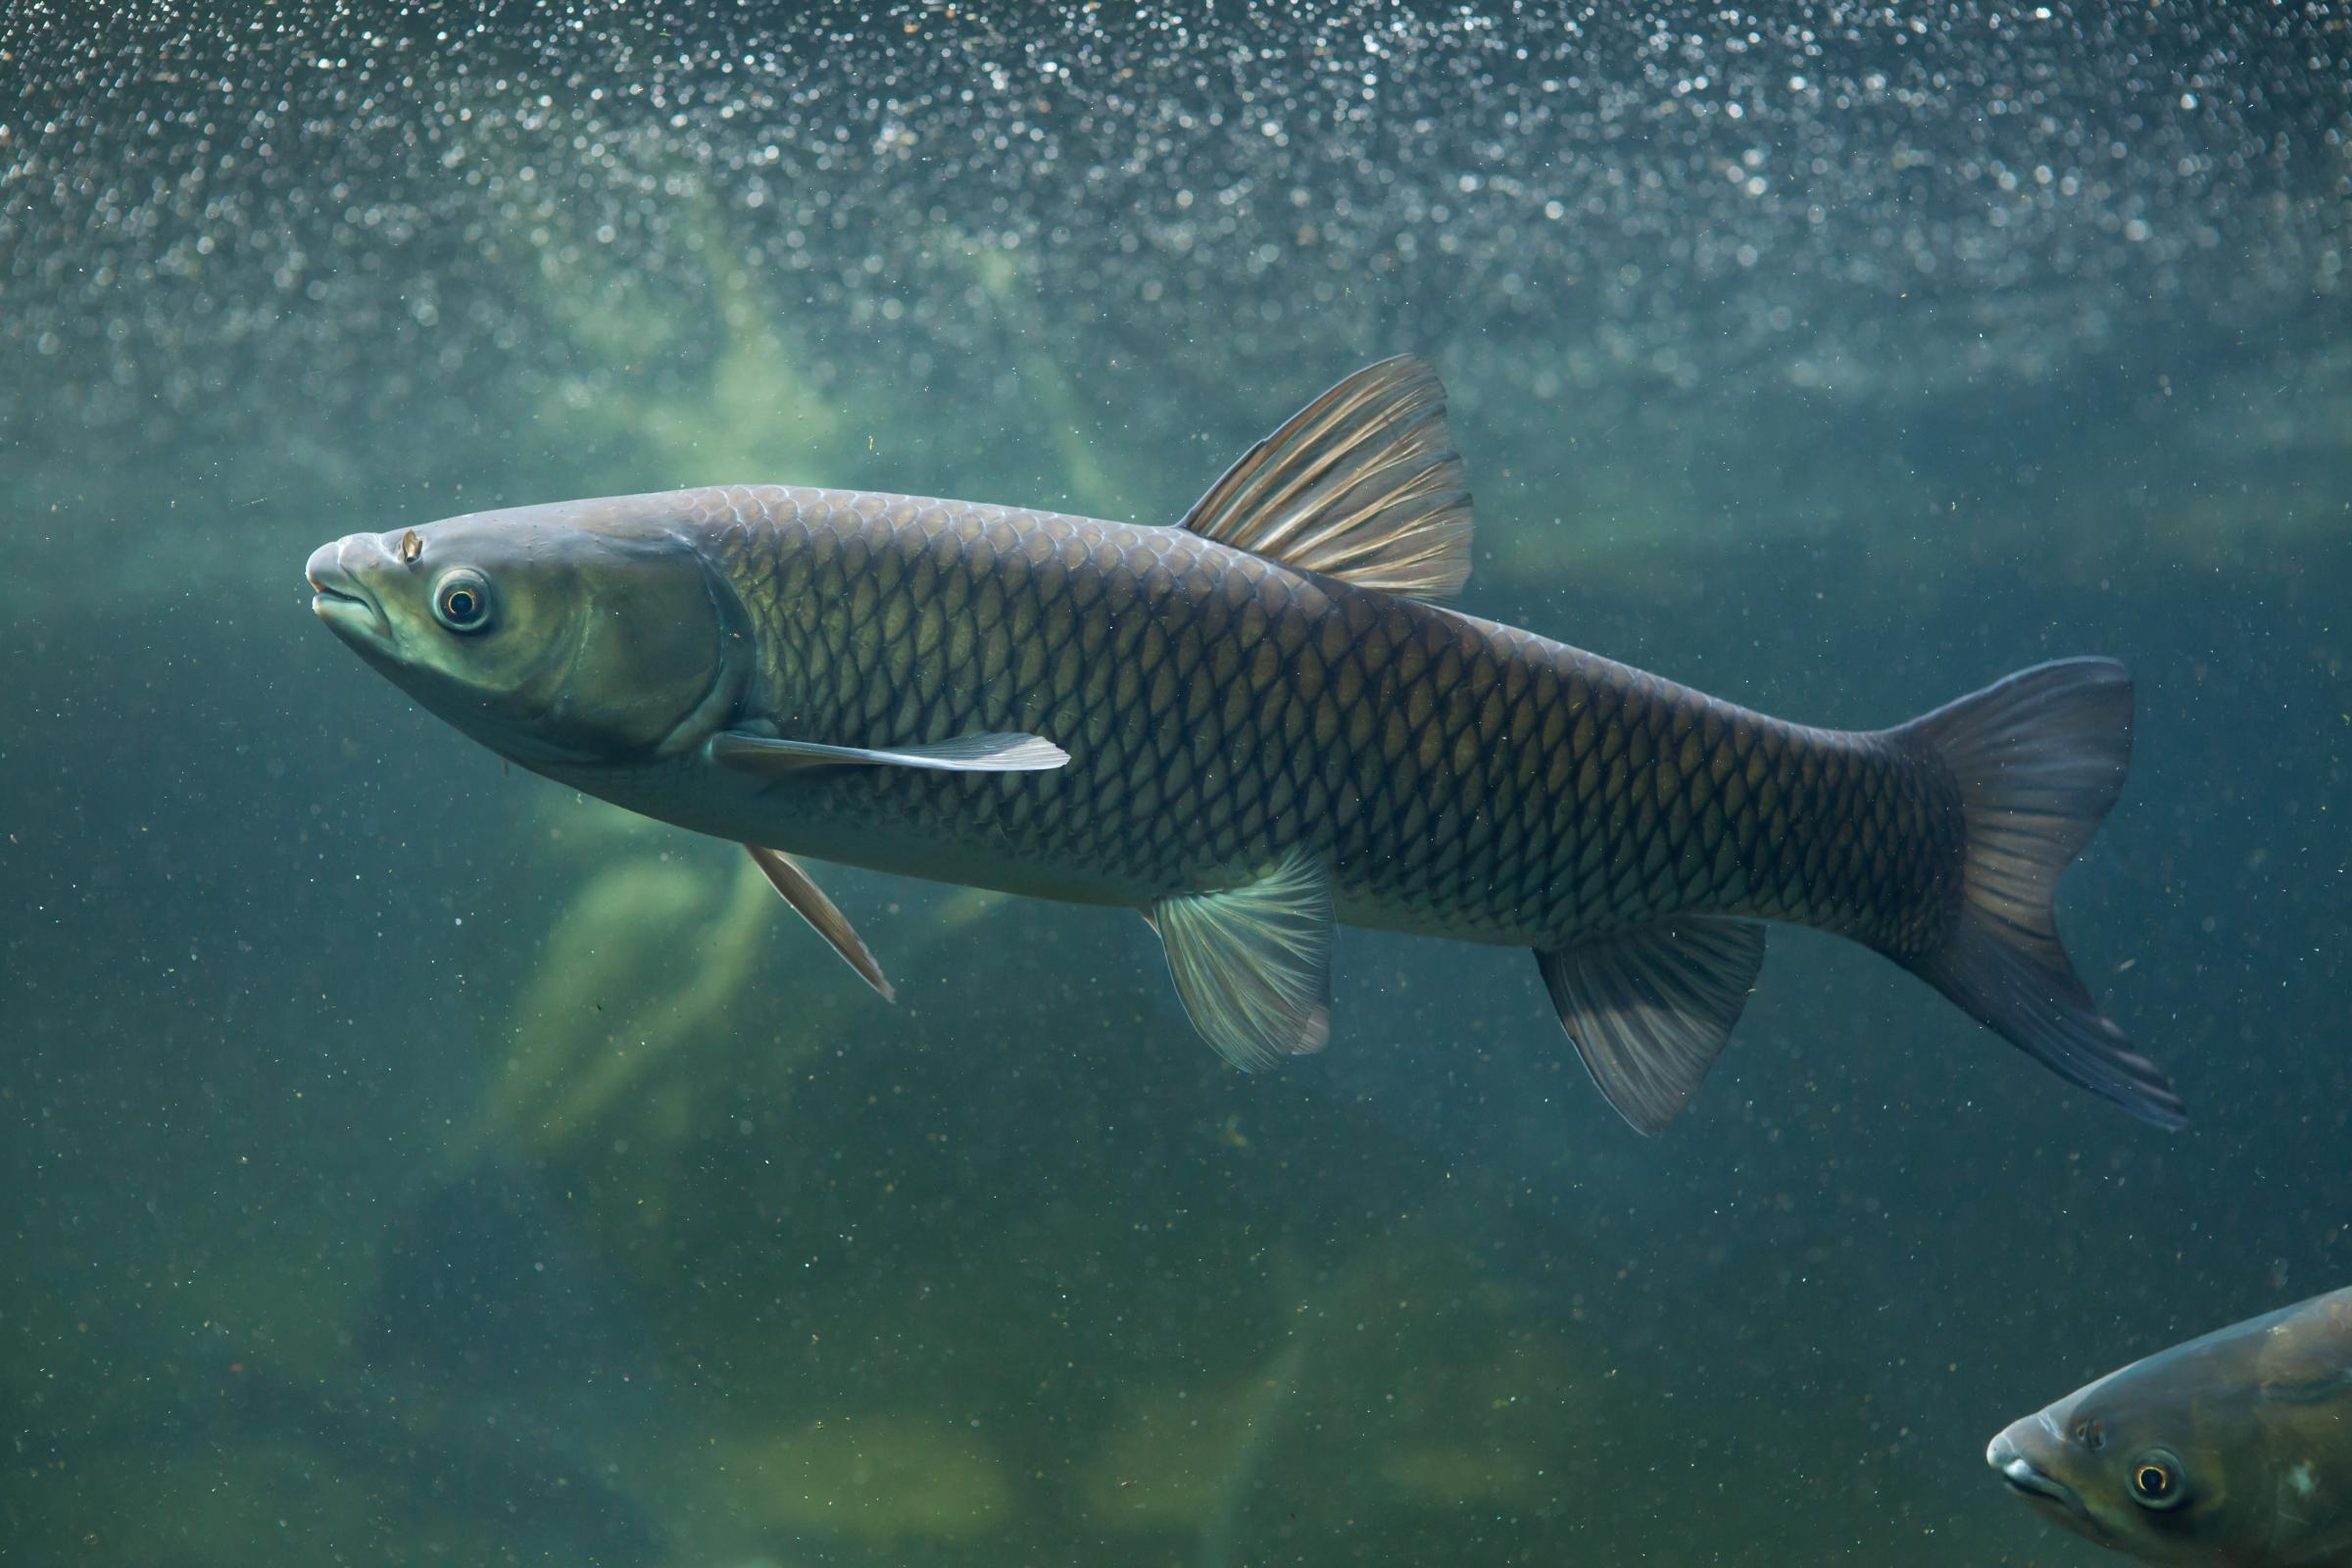 Grass Carp Egg Discovery Could Mean Bad News For Ohio's ...